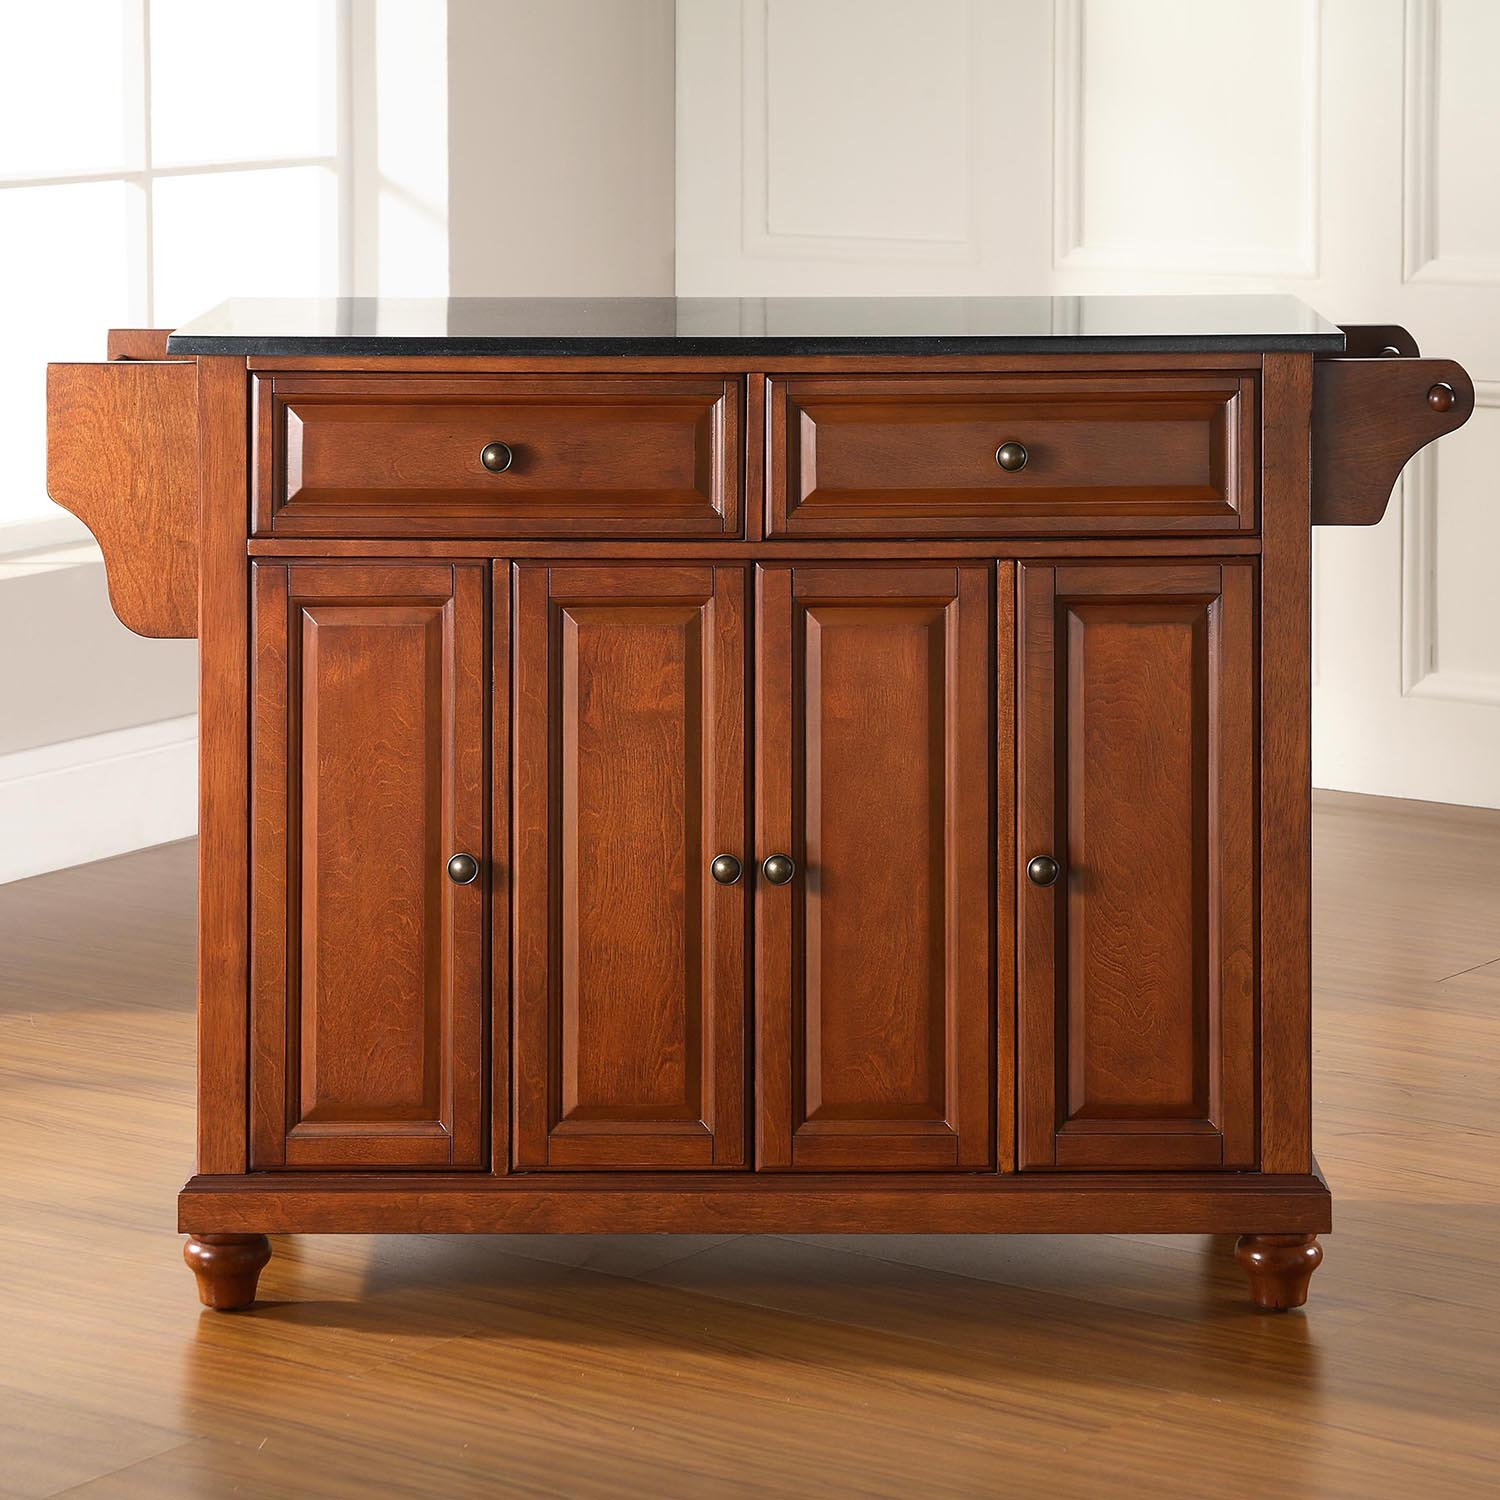 Cambridge Solid Black Granite Top Kitchen Island - Classic Cherry - CROS-KF30004DCH